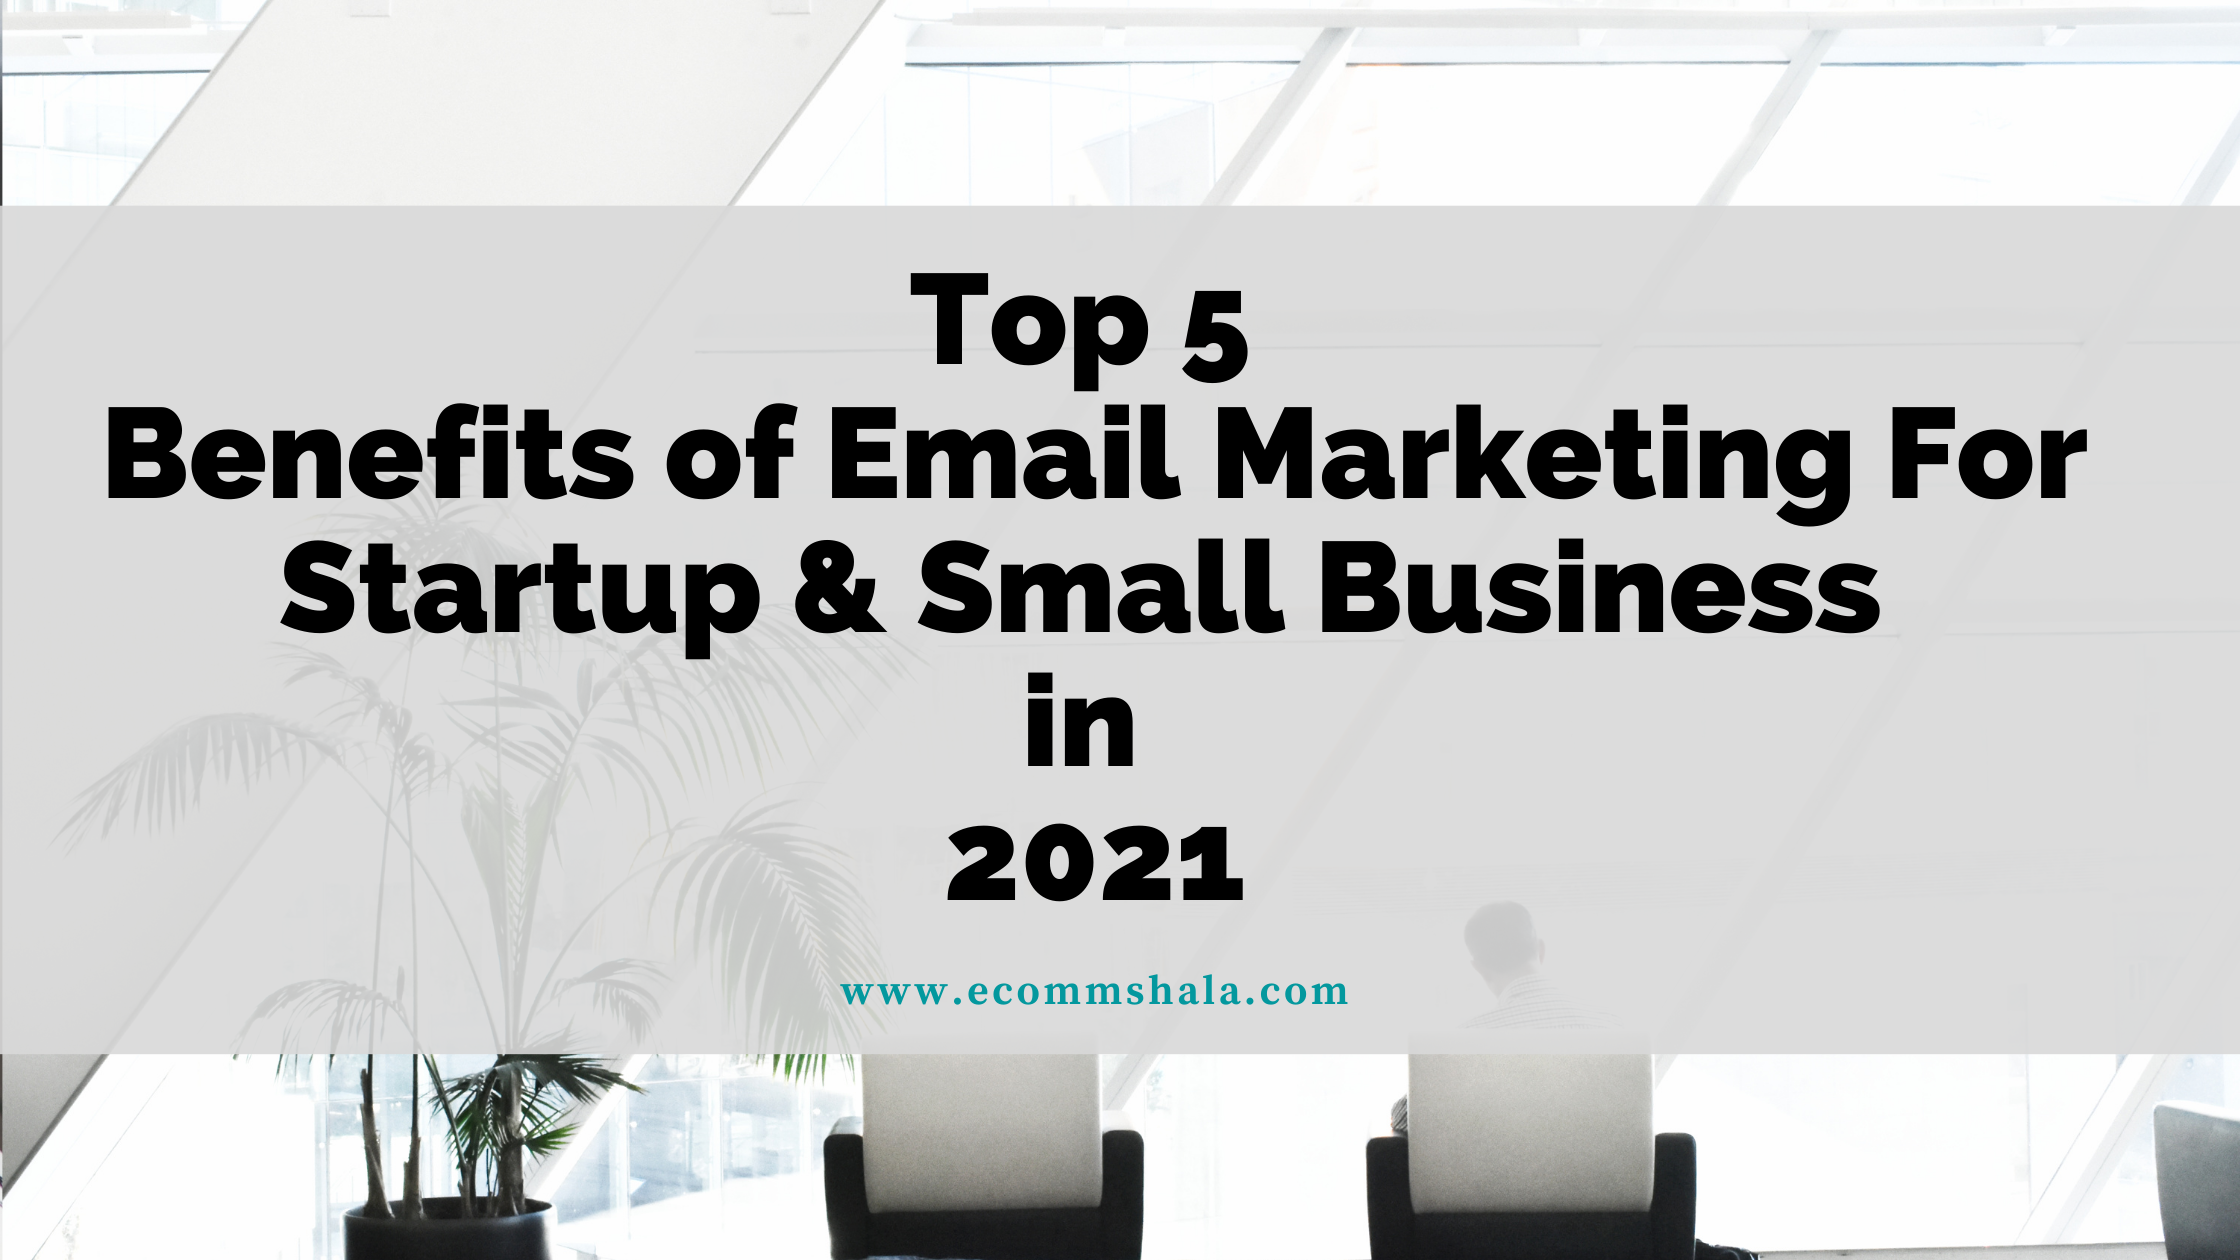 Benefits of Email Marketing For Startup & Small Business